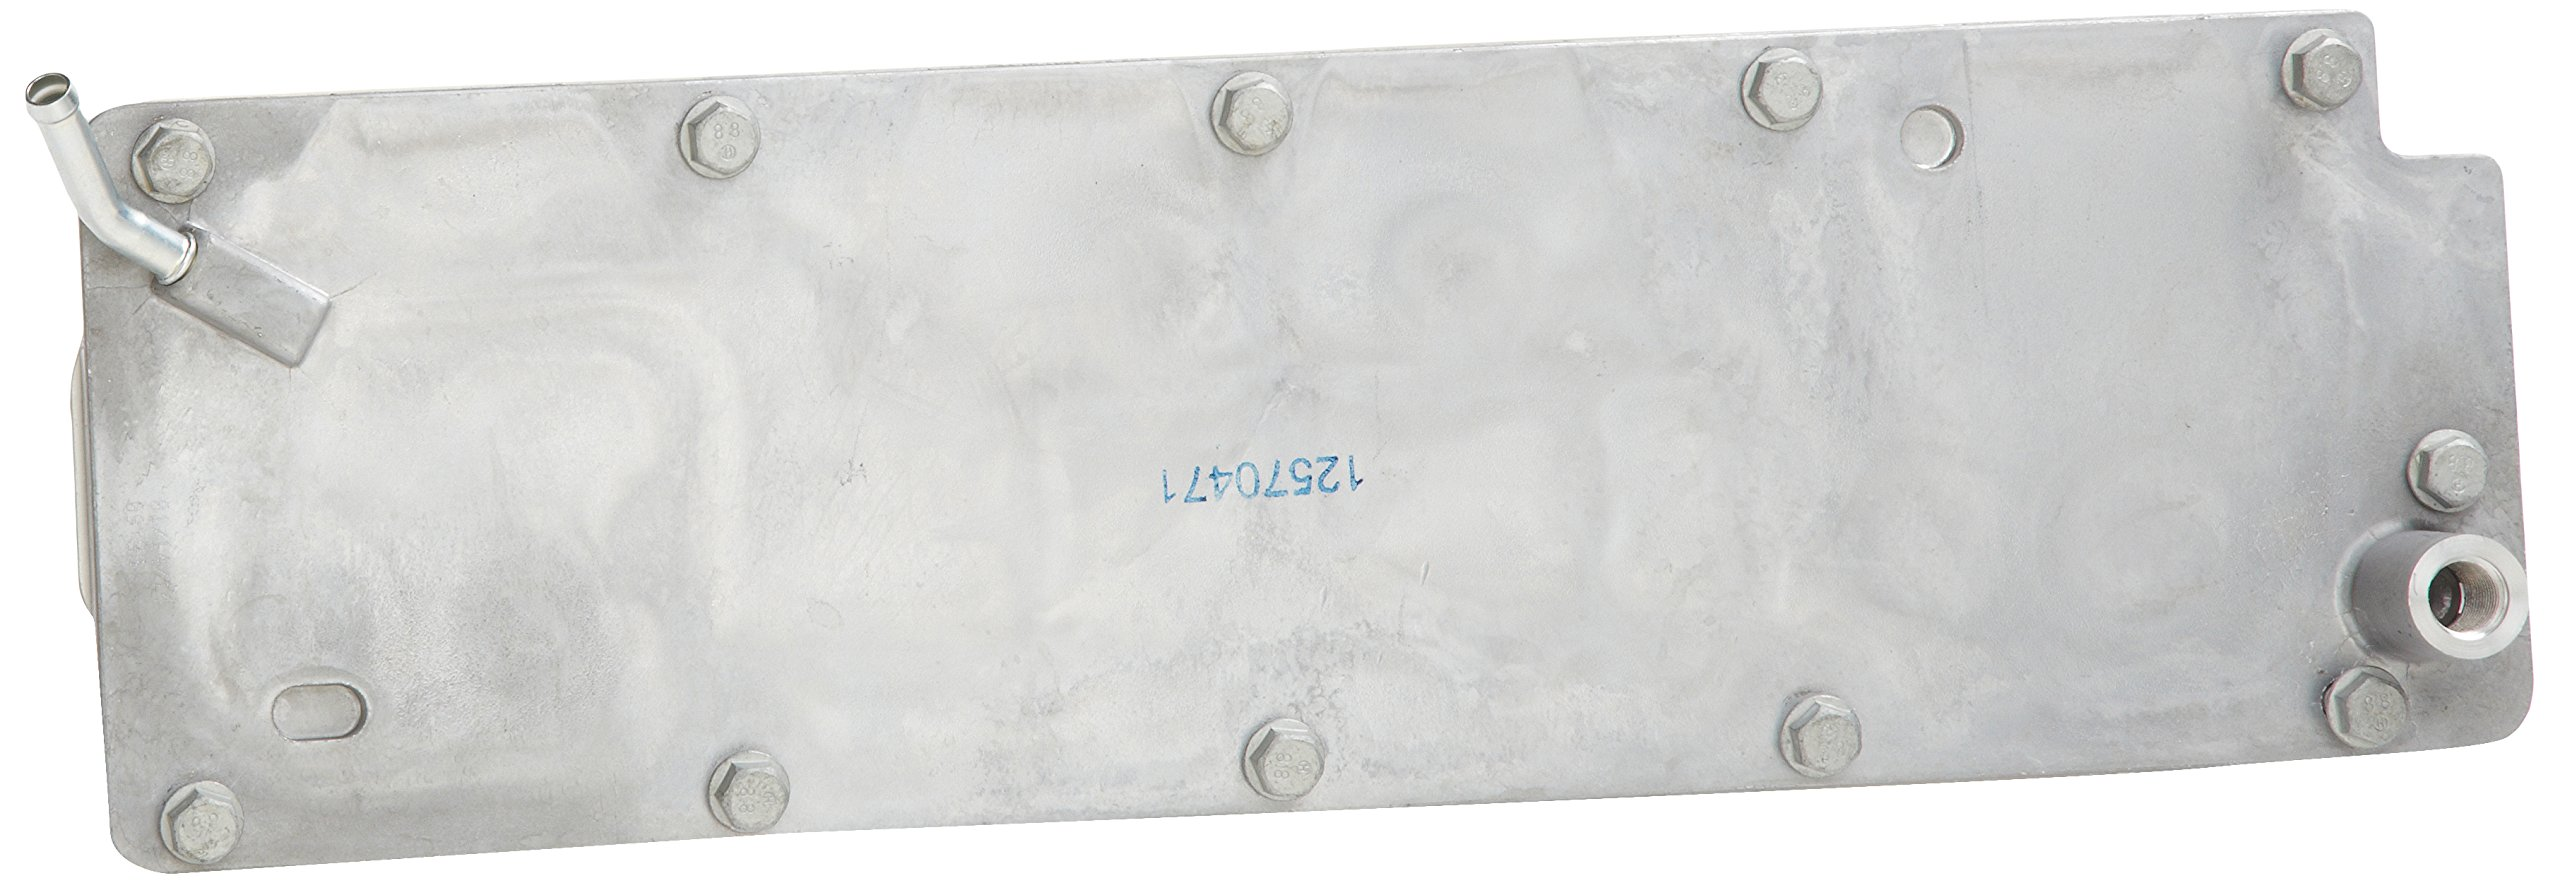 Percy/'s Exhaust Header Gasket 66032; Seal-4-Good Round Port for Chevy LS-Series